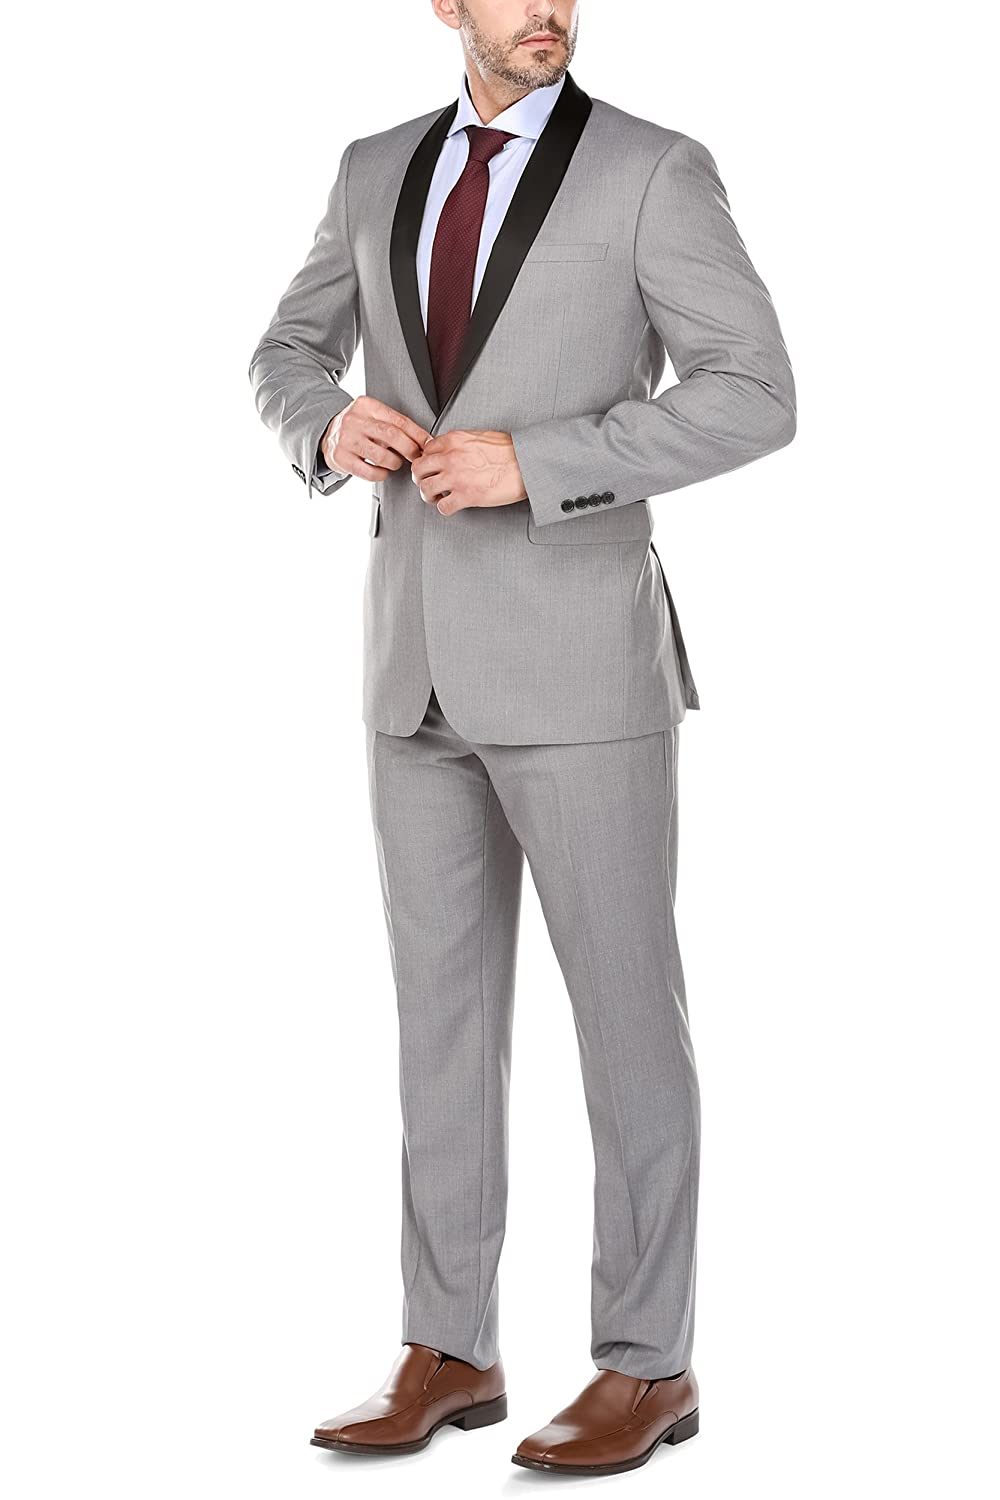 ef362c7beea8 Jacket: Fully lined, 1 button, welt chest pocket, 2 flap front pockets, 3  inner pockets, dual side vents, satin shawl collar, slim fit, single  breasted suit